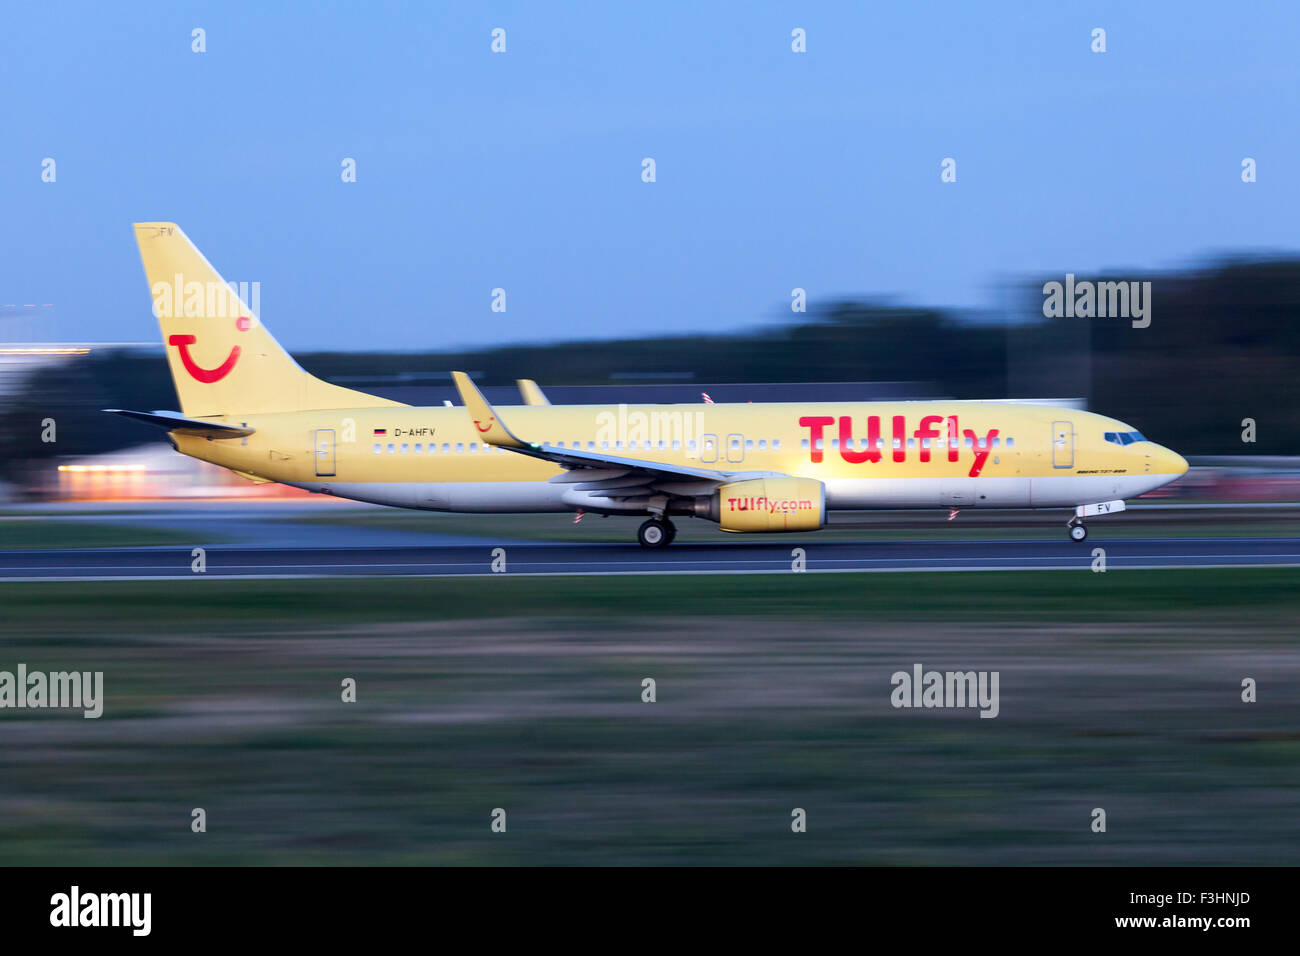 TUIfly Boeing 737-800 at the runway of Frankfurt International Airport - Stock Image